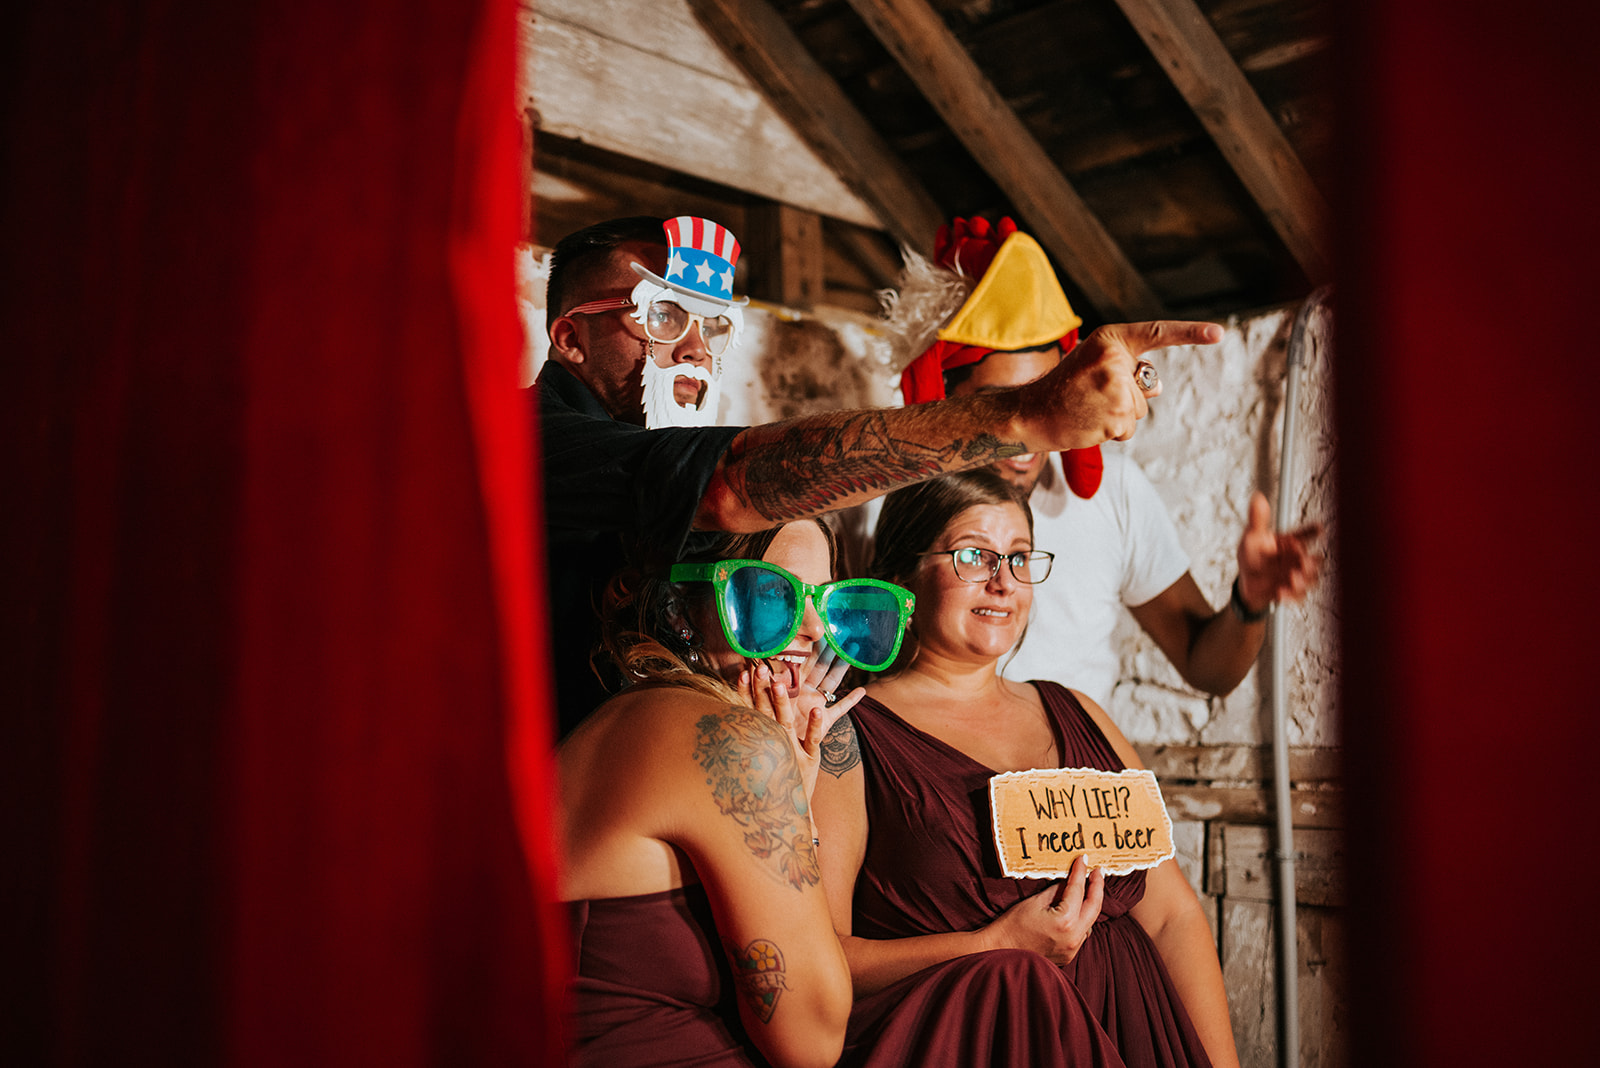 overthevineswisconsinwedding_1643.jpg